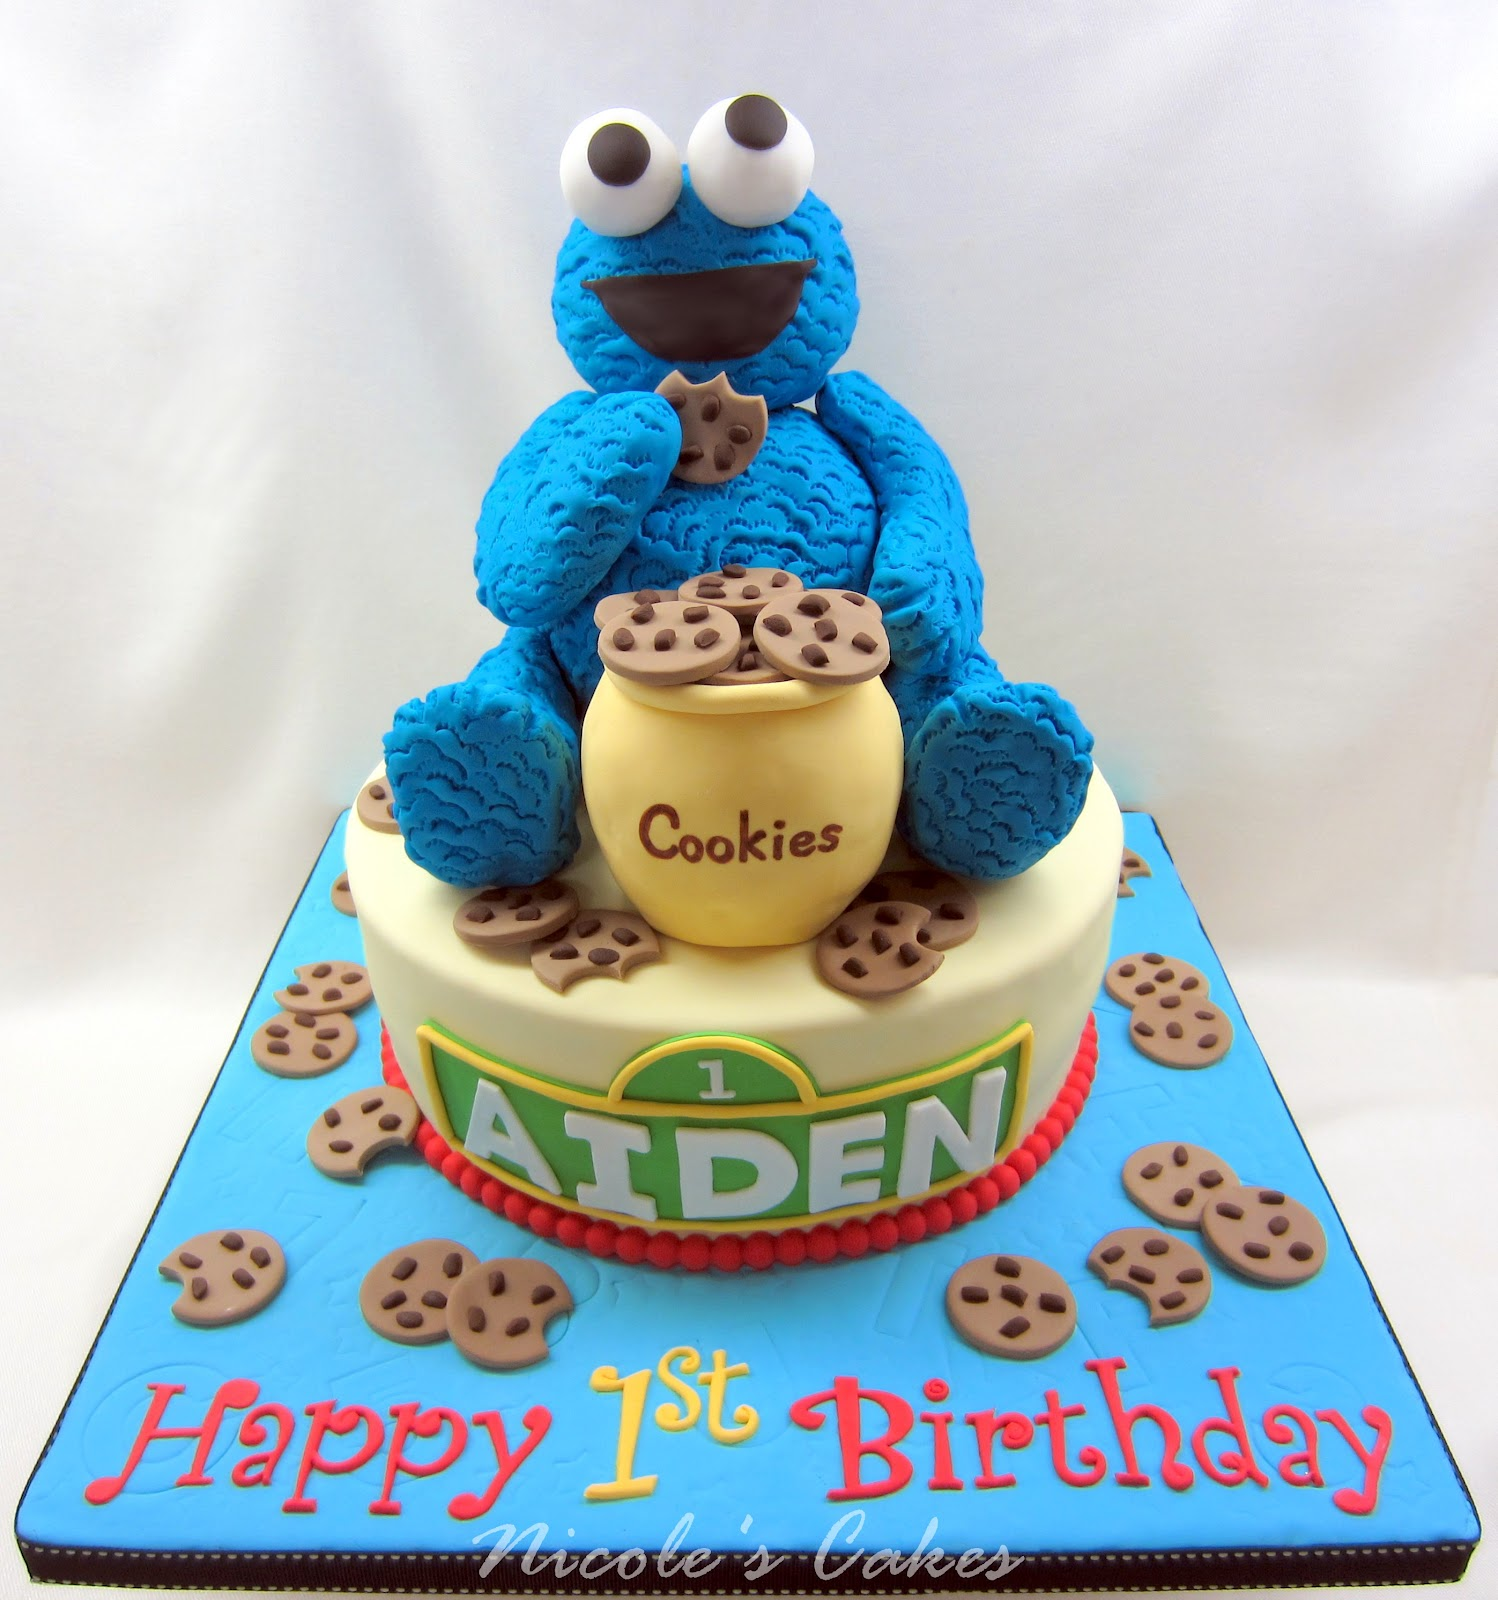 Confections, Cakes & Creations!: The Cookie Monster! A 1st